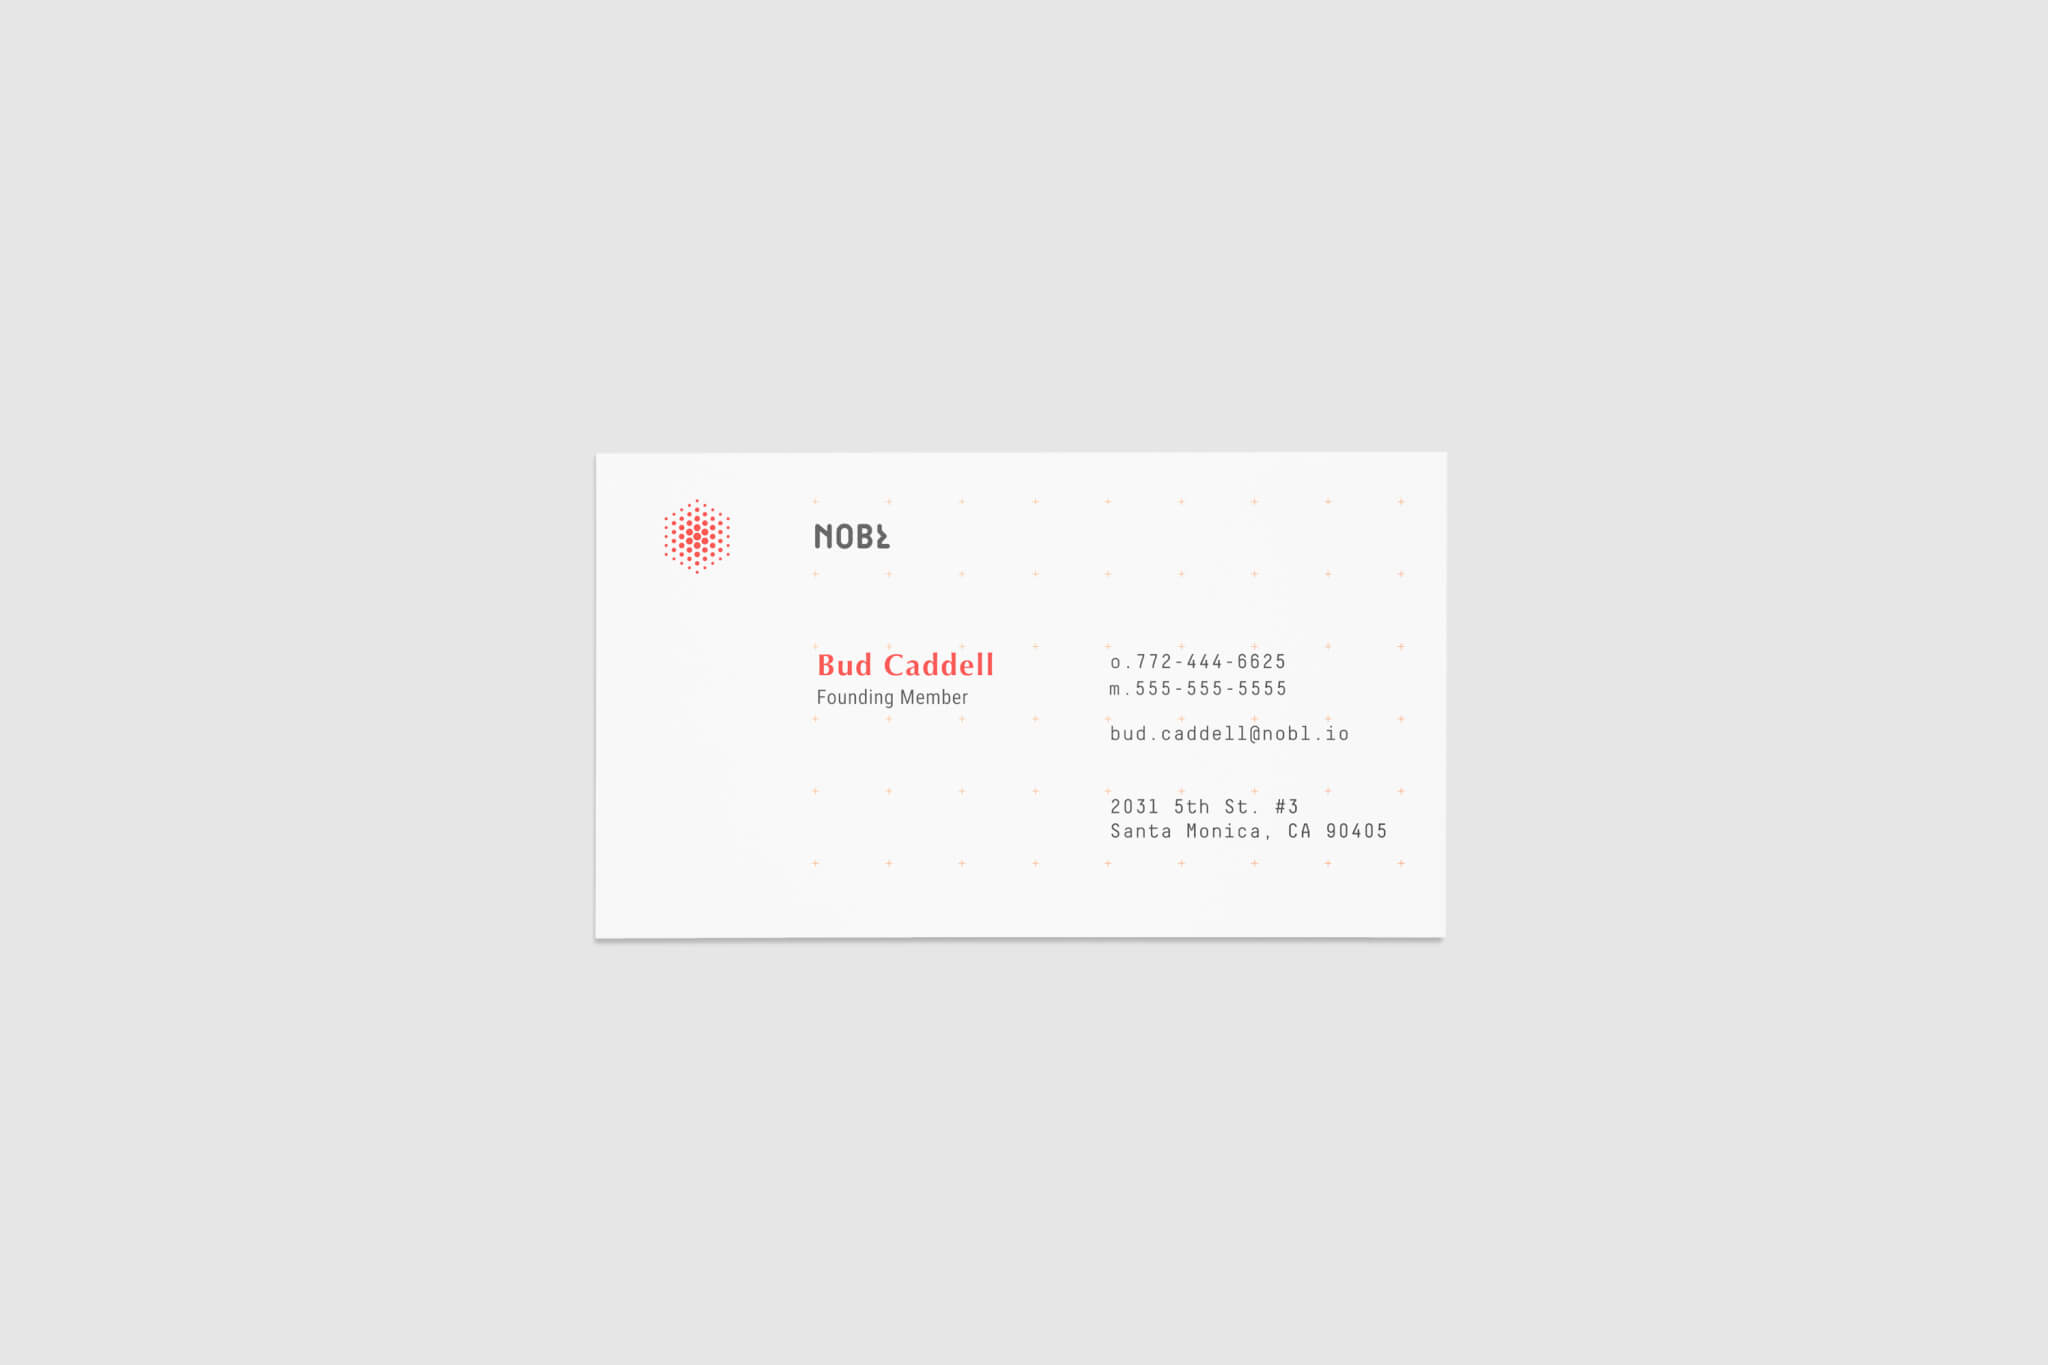 NOBL_BUSINESSCARD